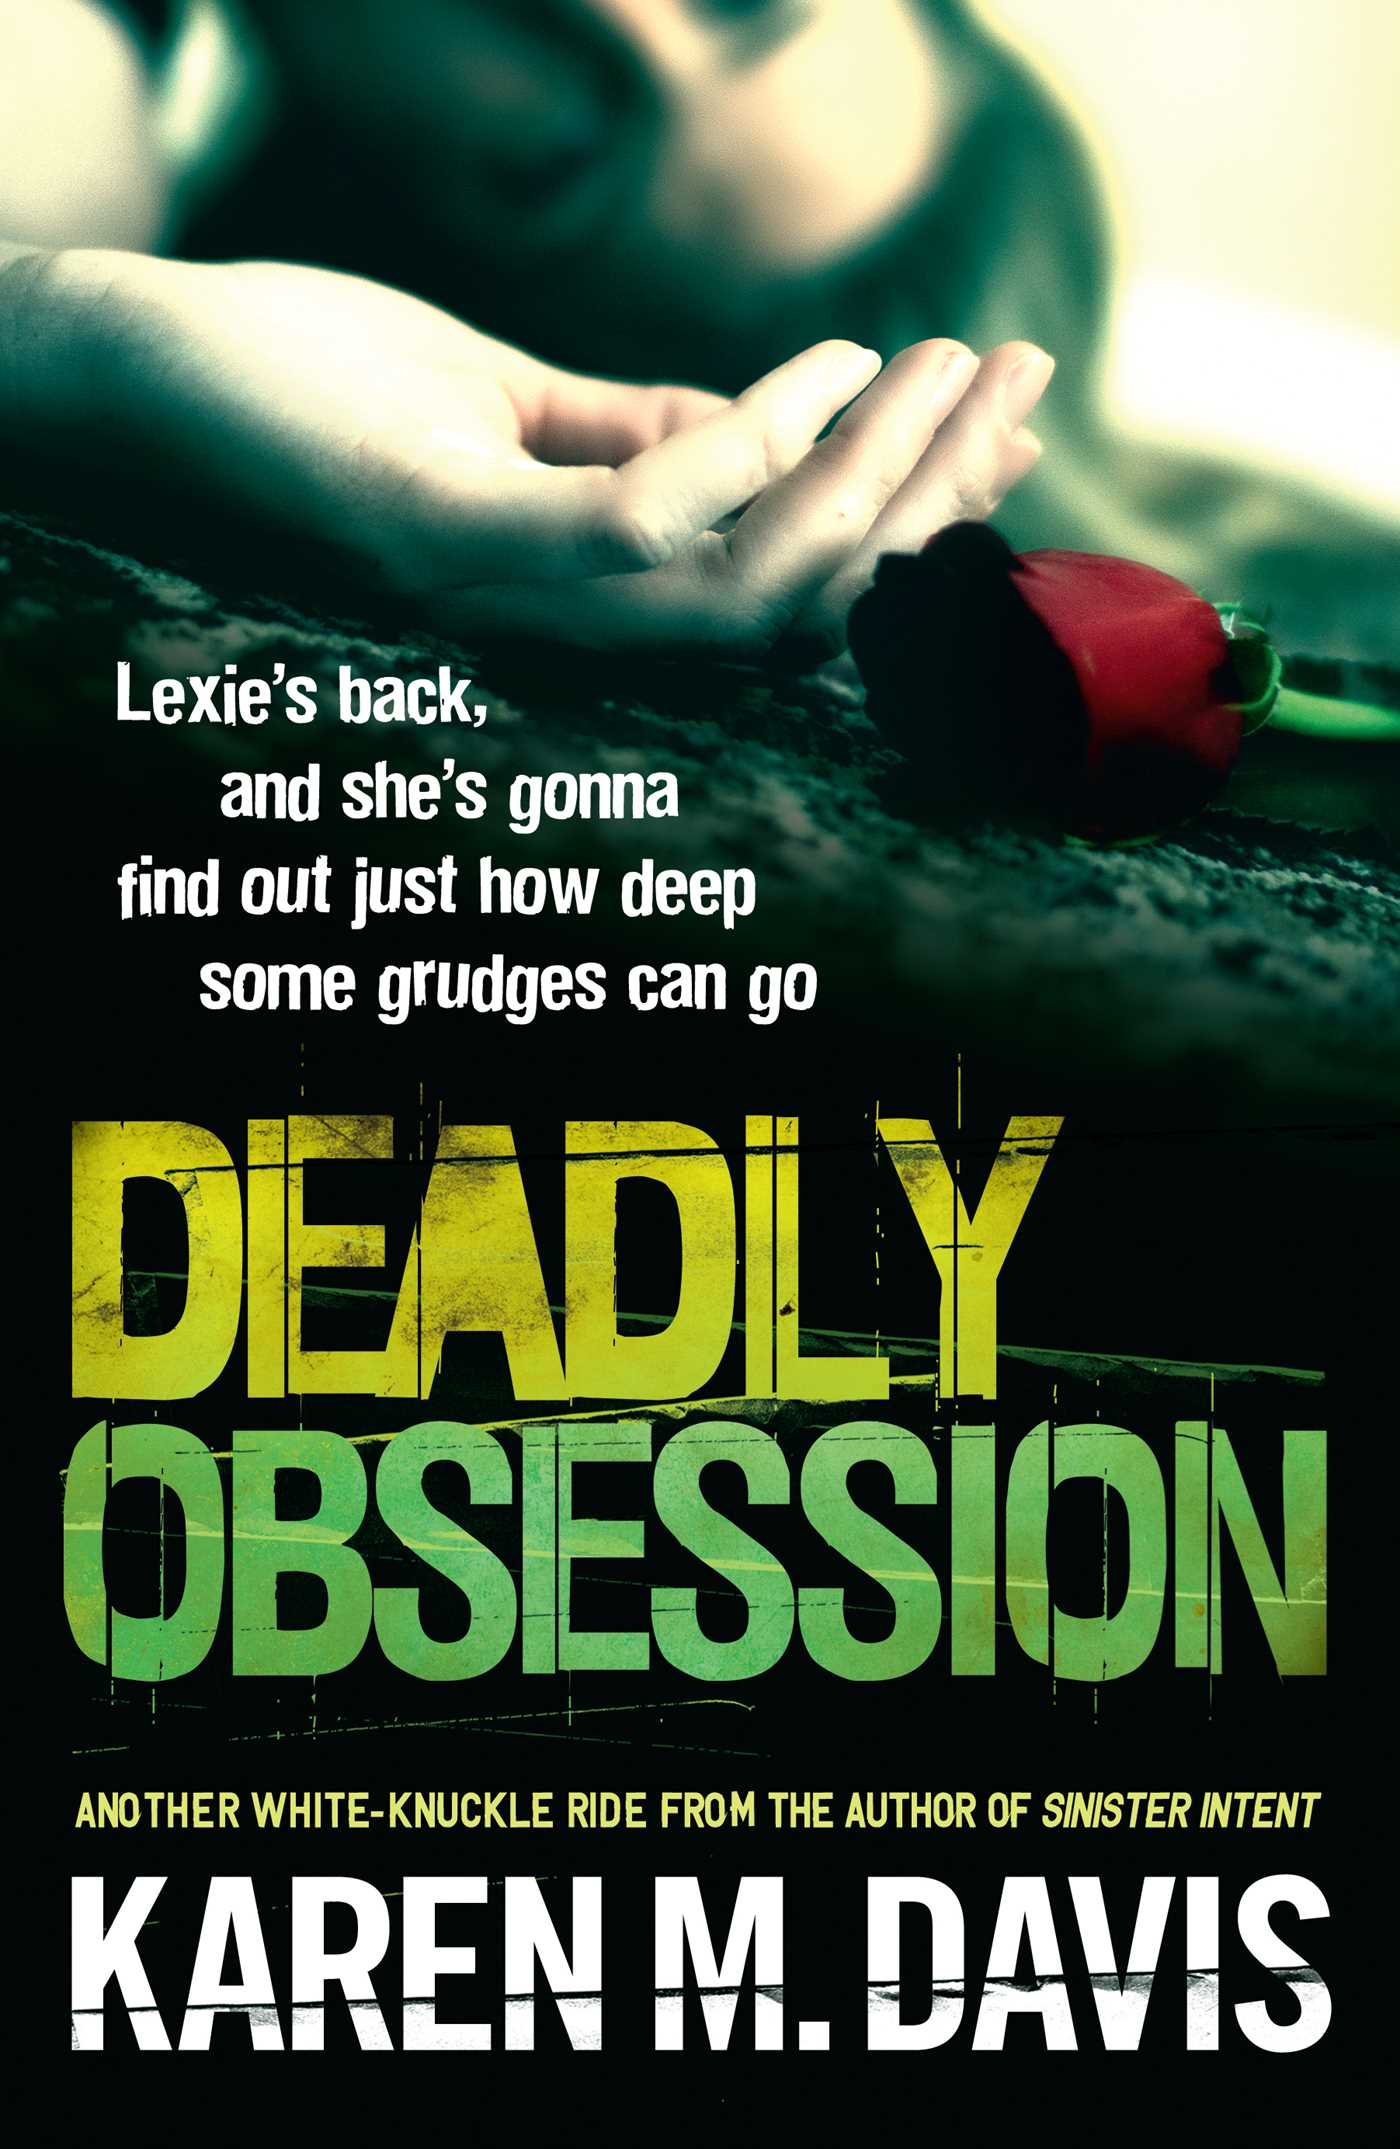 Deadly obsession 9781922052551 hr